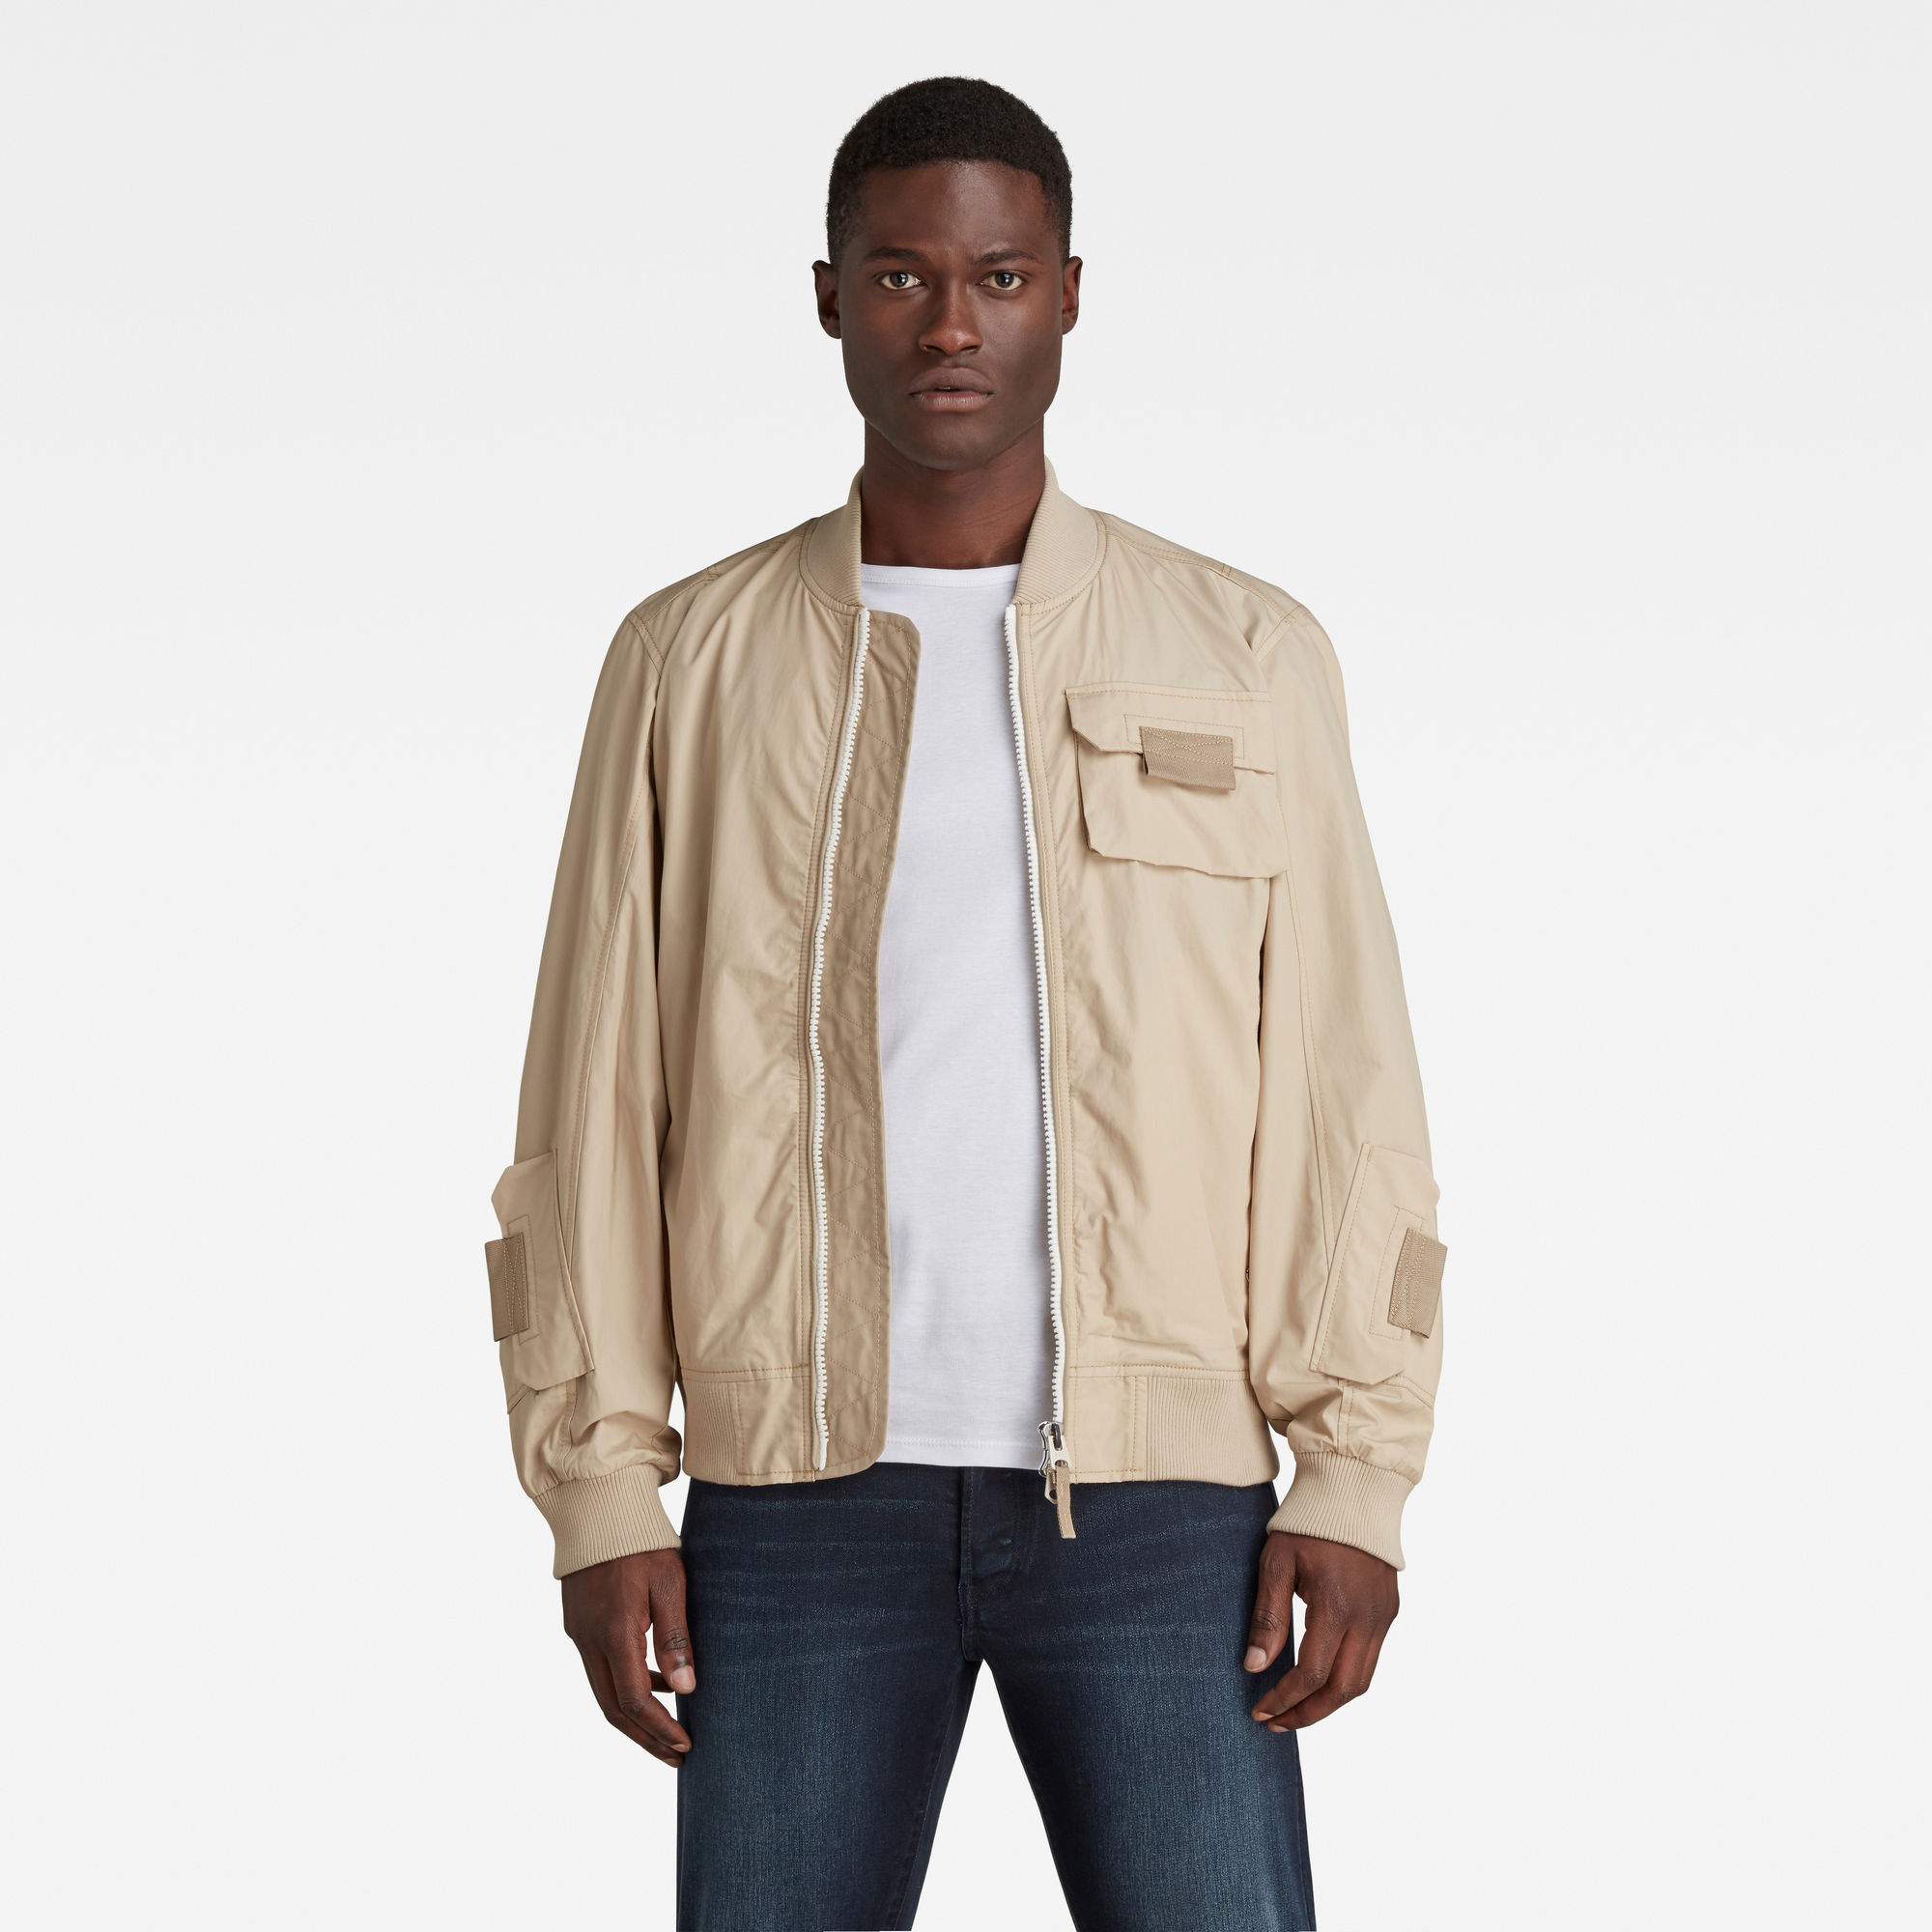 G-Star RAW Hombre Chaqueta Chest Pockets Poplin Bomber Beige